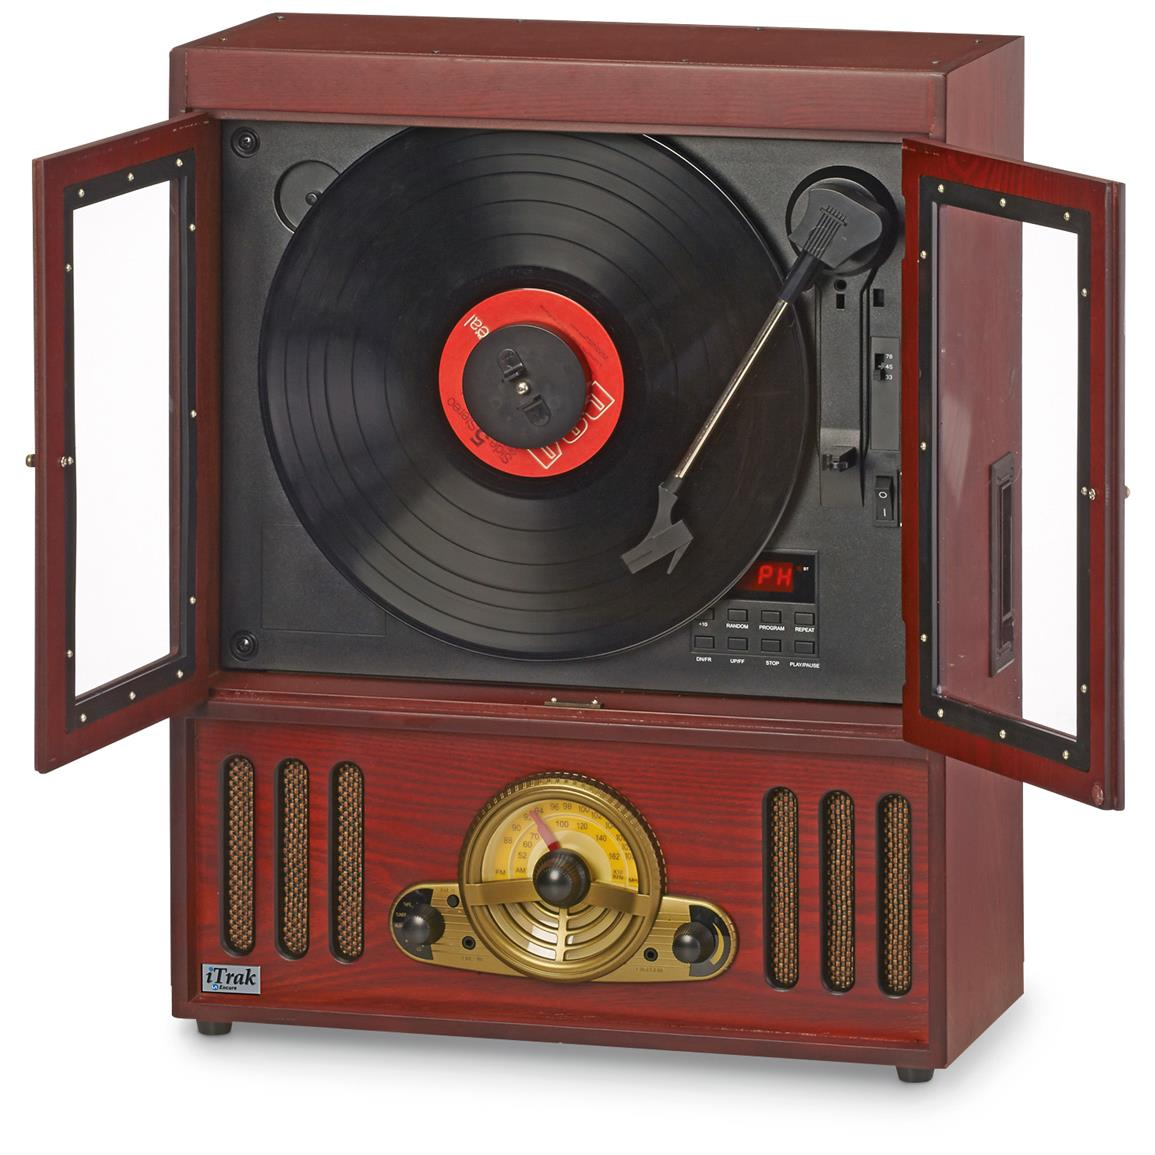 3-speed turntable with auto stop